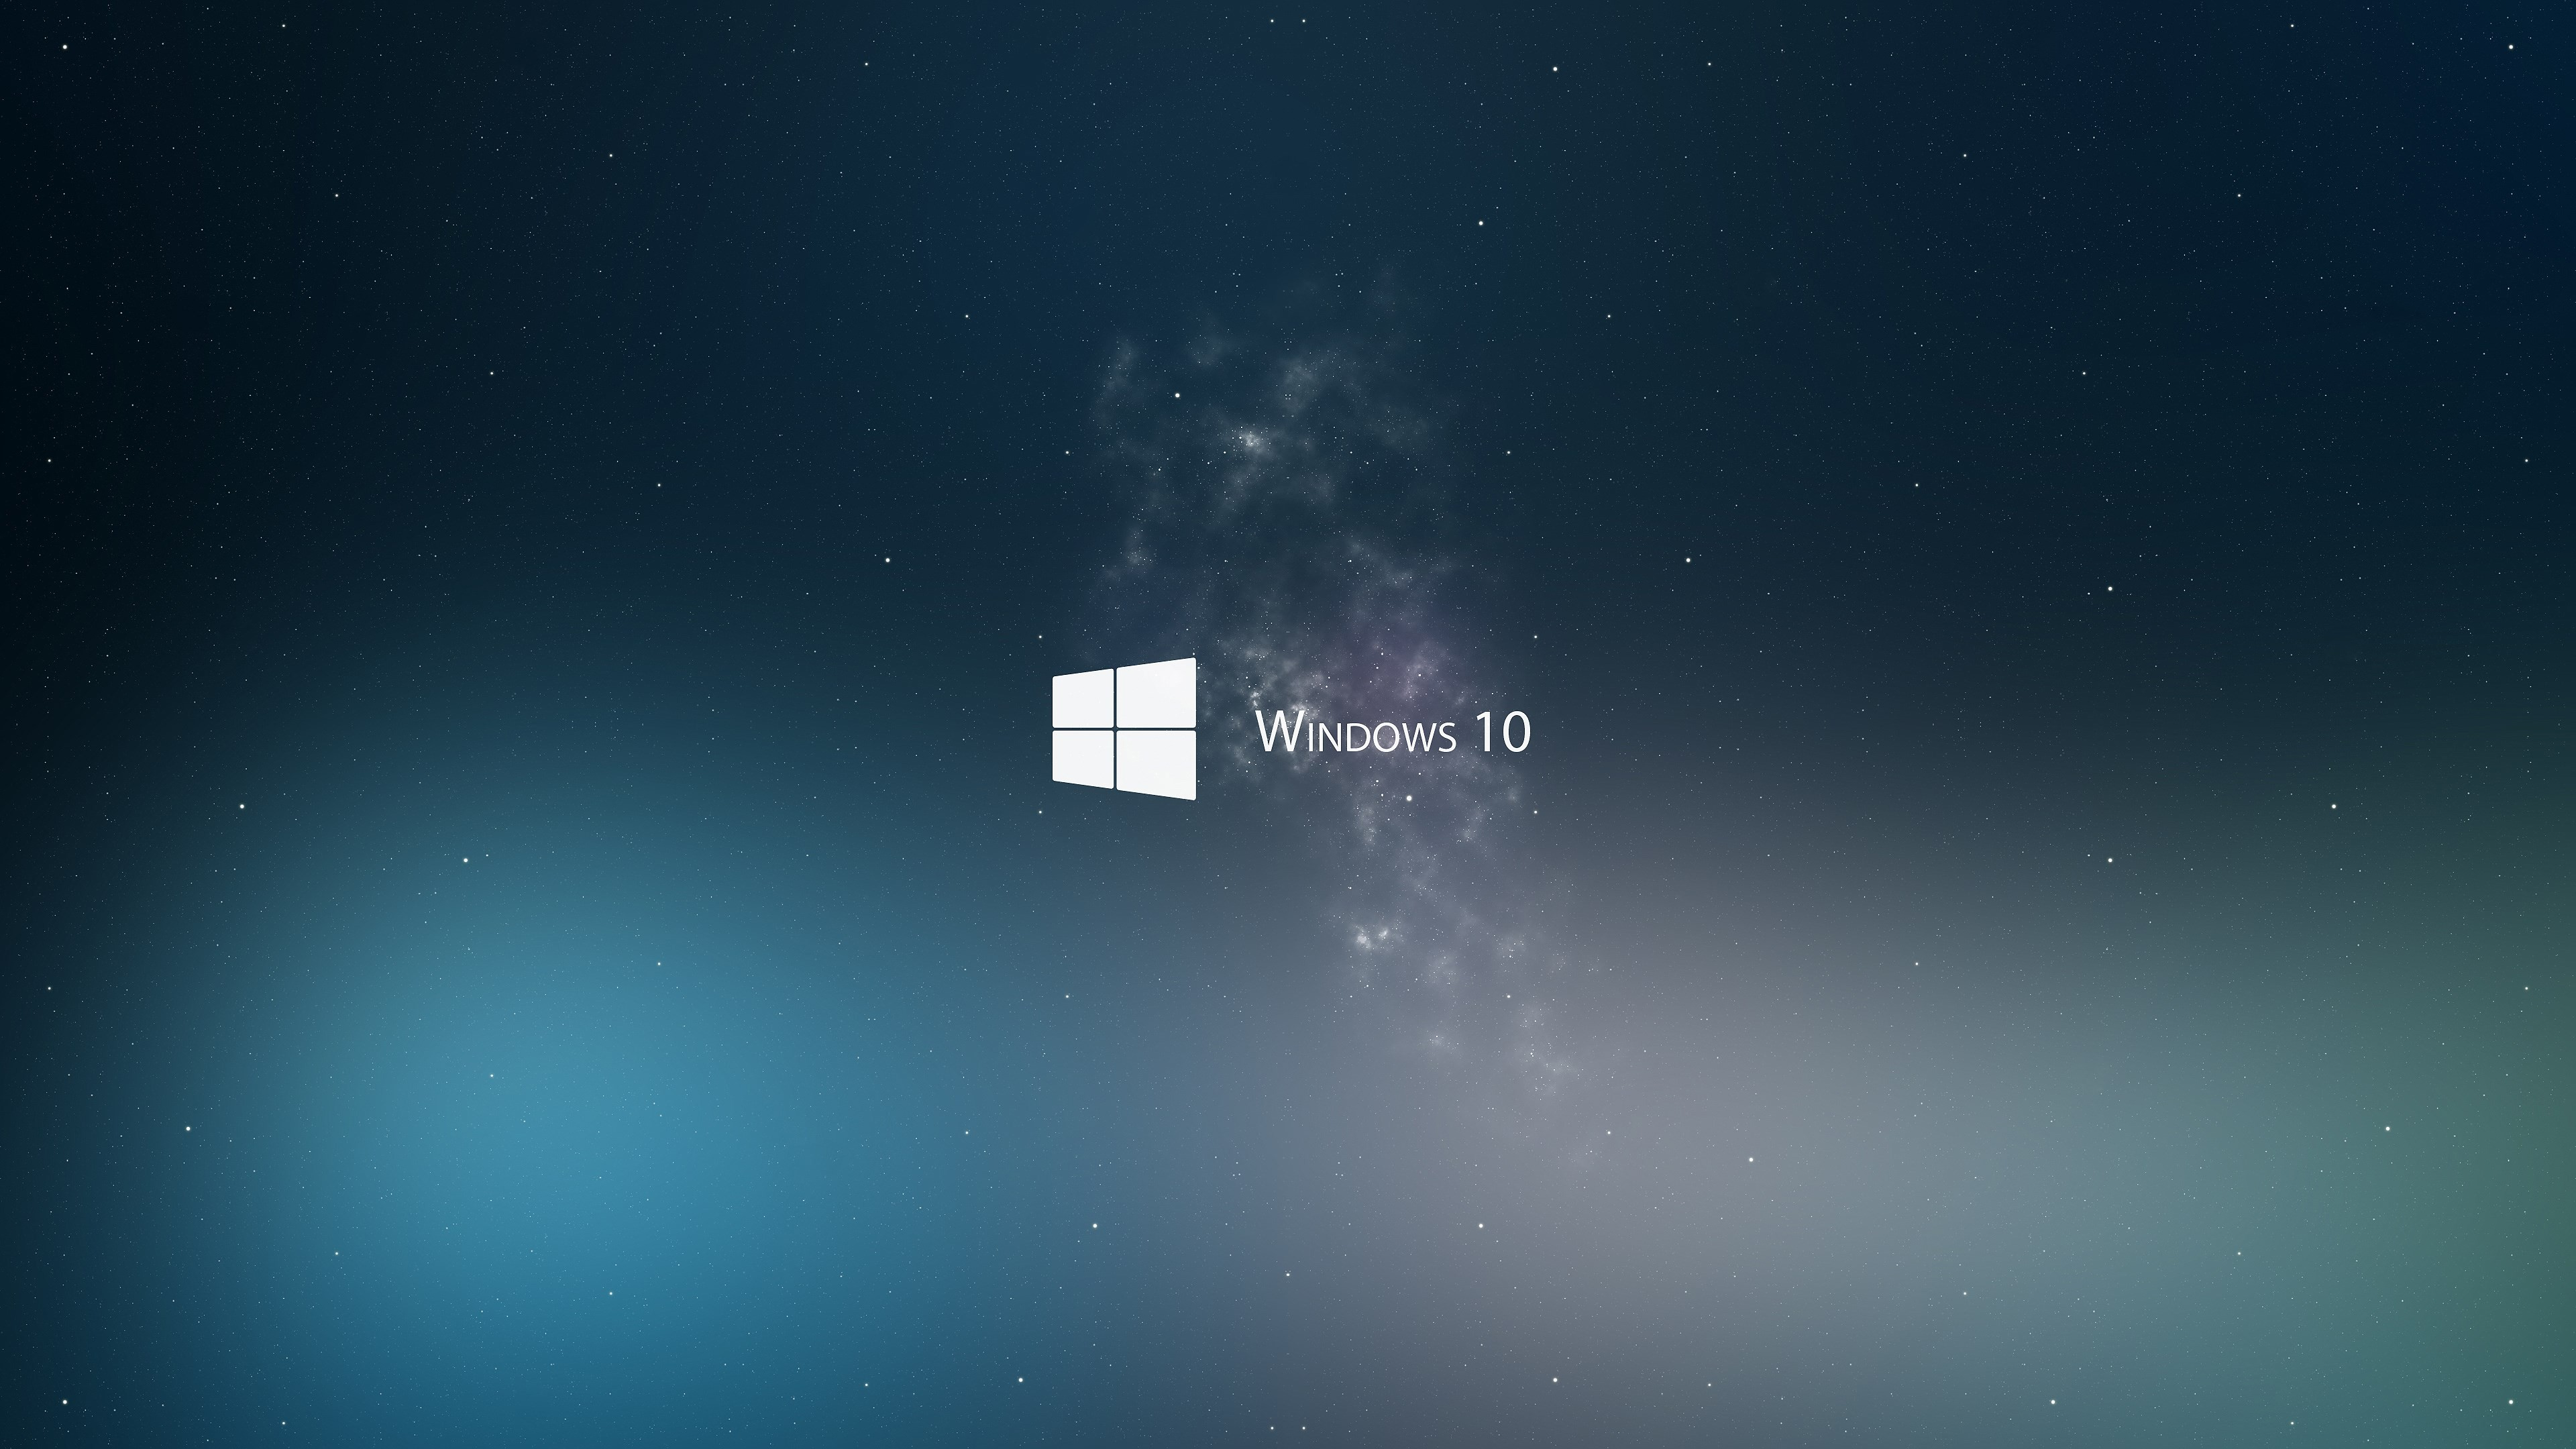 Windows 10 Wallpapers Backgrounds Photos Images Stock Droid Pro